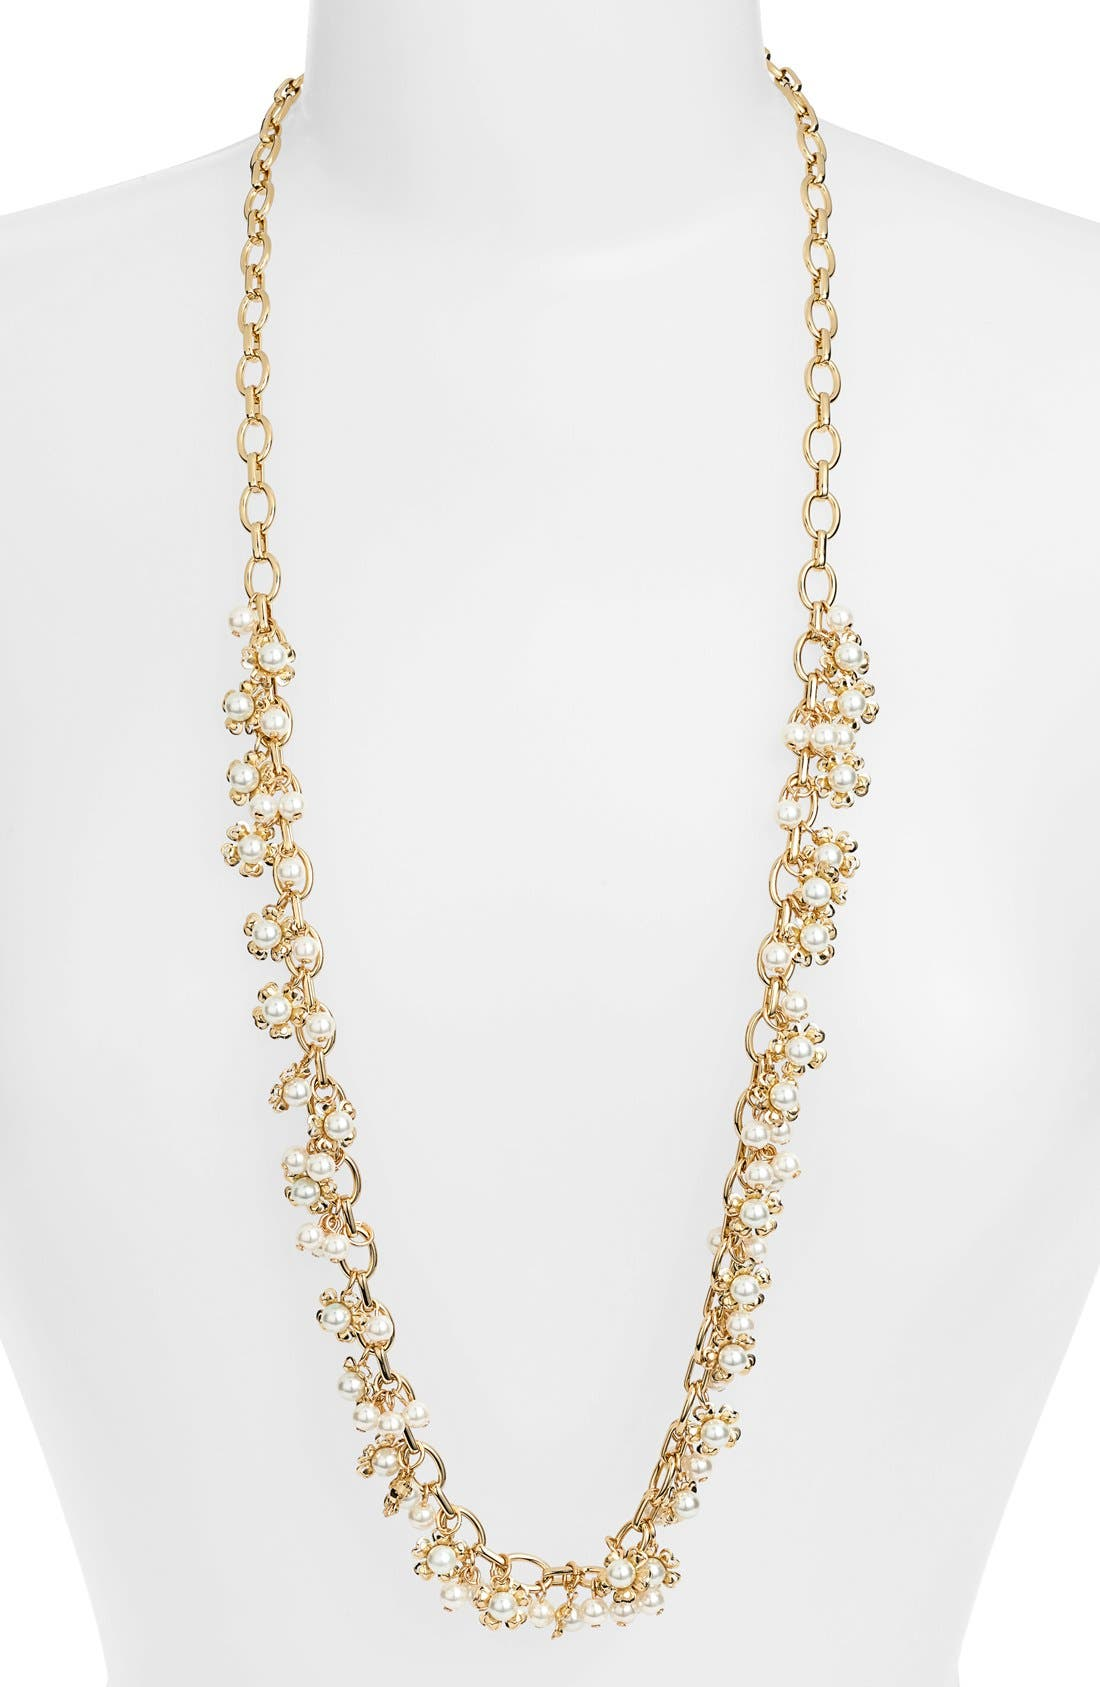 Main Image - Tory Burch 'Katie' Floral Cluster Long Necklace